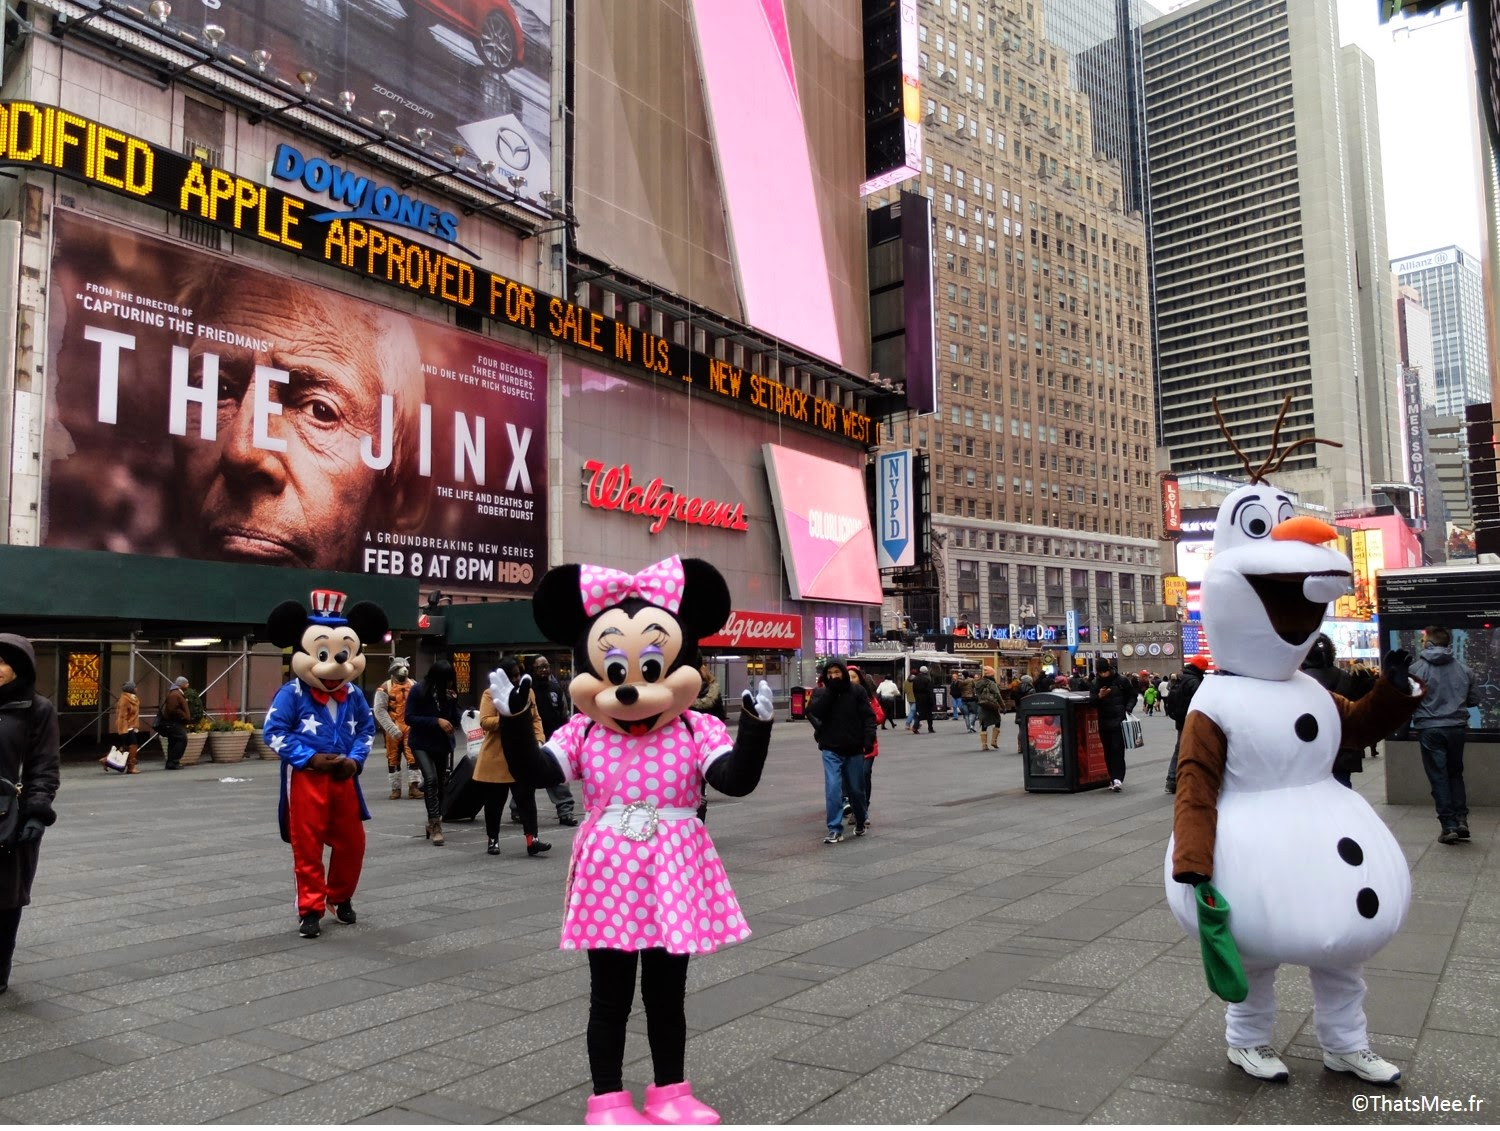 NY visiter New-York Times Square et Broadway personnage Minnie Mickey